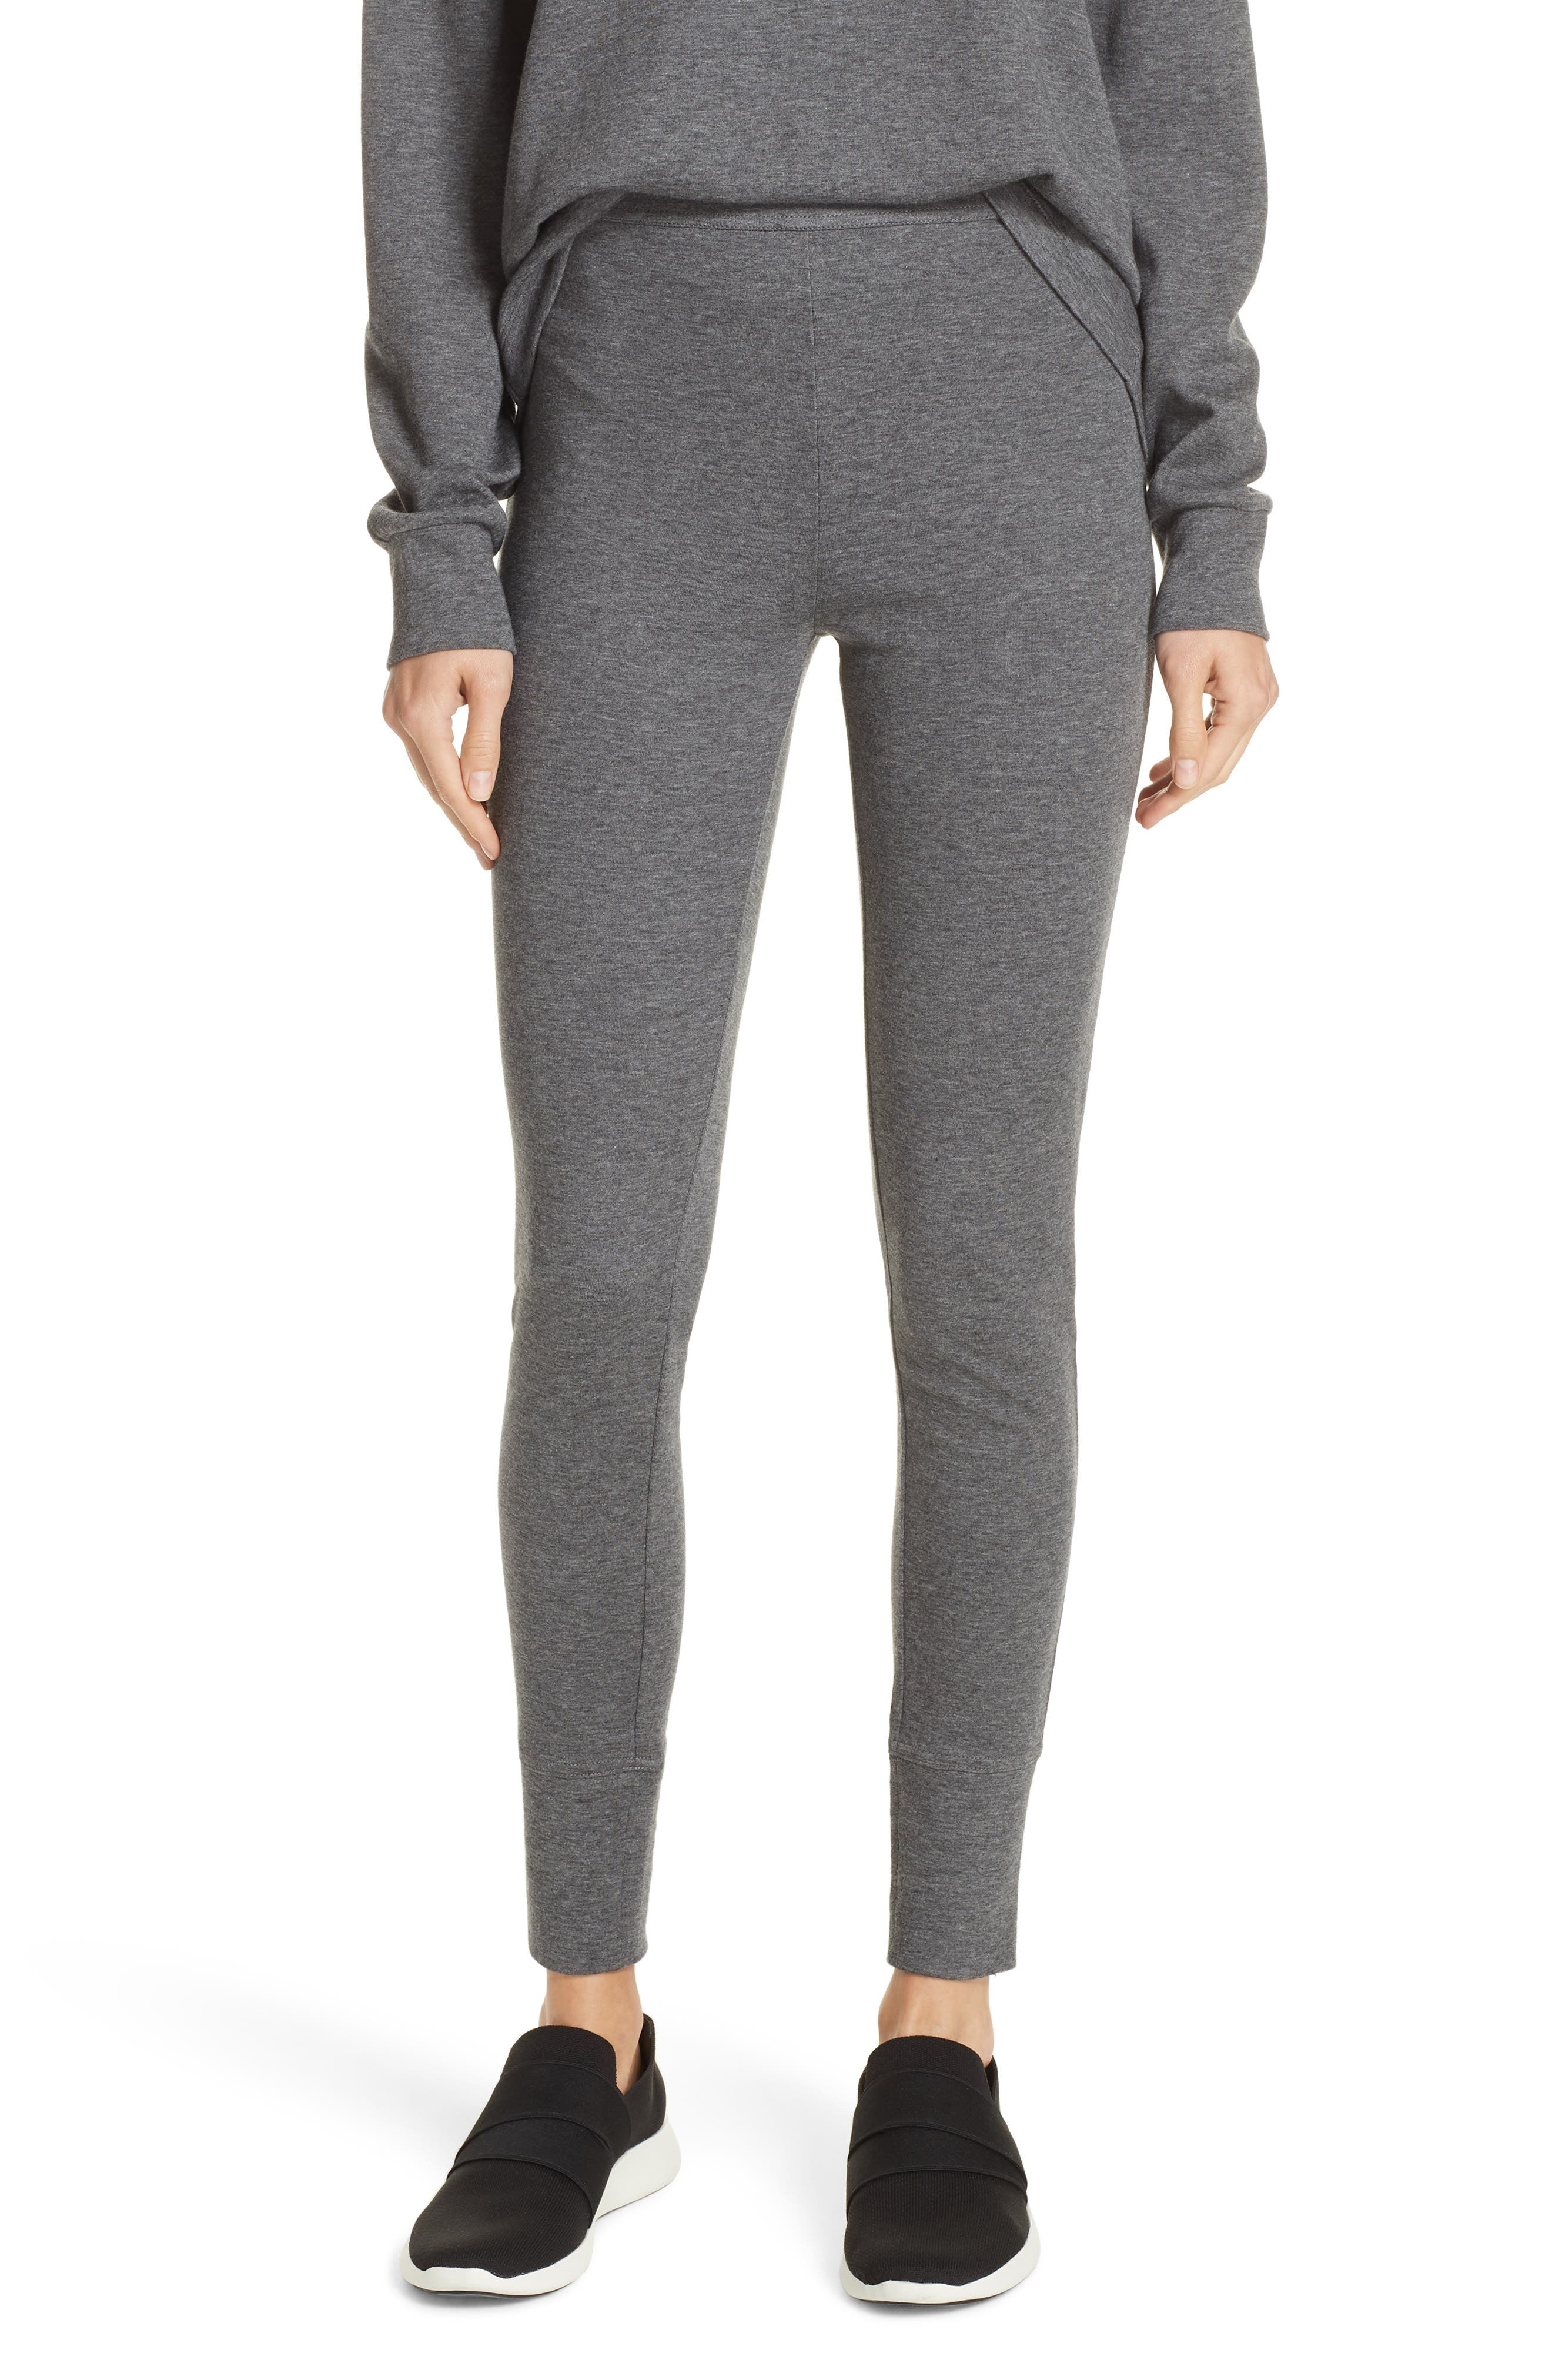 Heathered Cotton Blend Leggings,                             Main thumbnail 1, color,                             HEATHER CHARCOAL